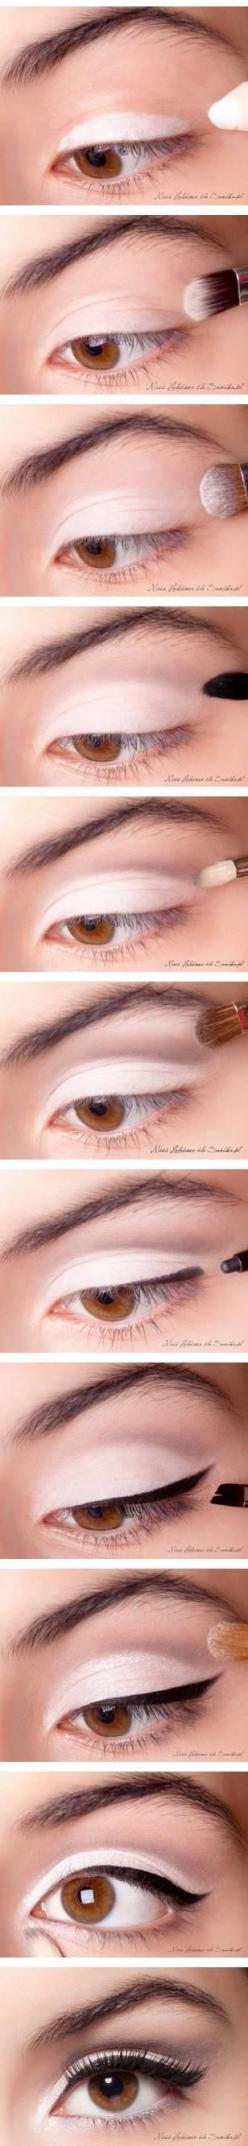 This makeup will look TERRIBLE if it is rushed and it needs perfect white tones to set in ur skin!: Makeup Tutorial, Make Up, Cat Eye, Eye Makeup, Classic Eyes, Cateye, Makeuptips, Eyemakeup, Makeupideas